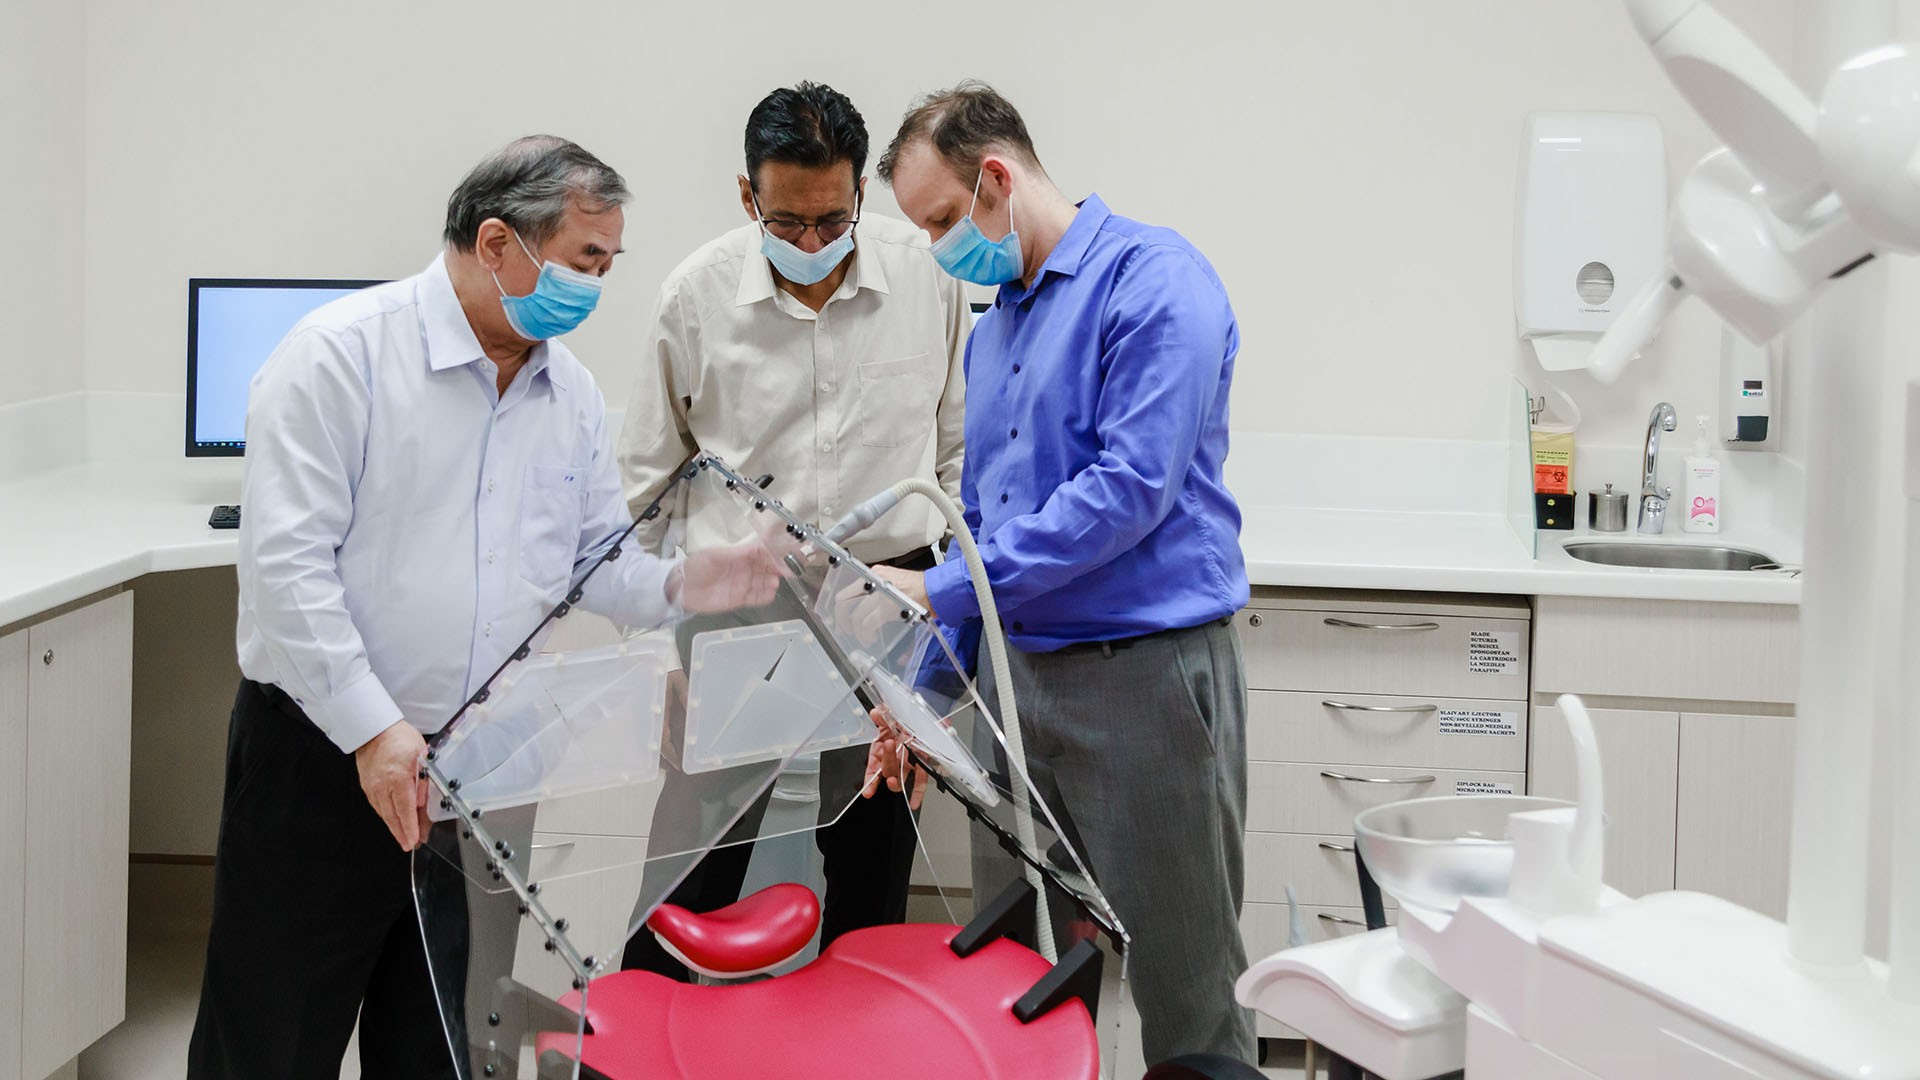 The Dental Droplet and Aerosol Reducing Tent (Dental DART) was developed by NUS researchers (from left) Professor Freddy Boey, Mr Sudarshan Anantharaman, Associate Professor Vinicius Rosa and their team. Photo courtesy: NUS